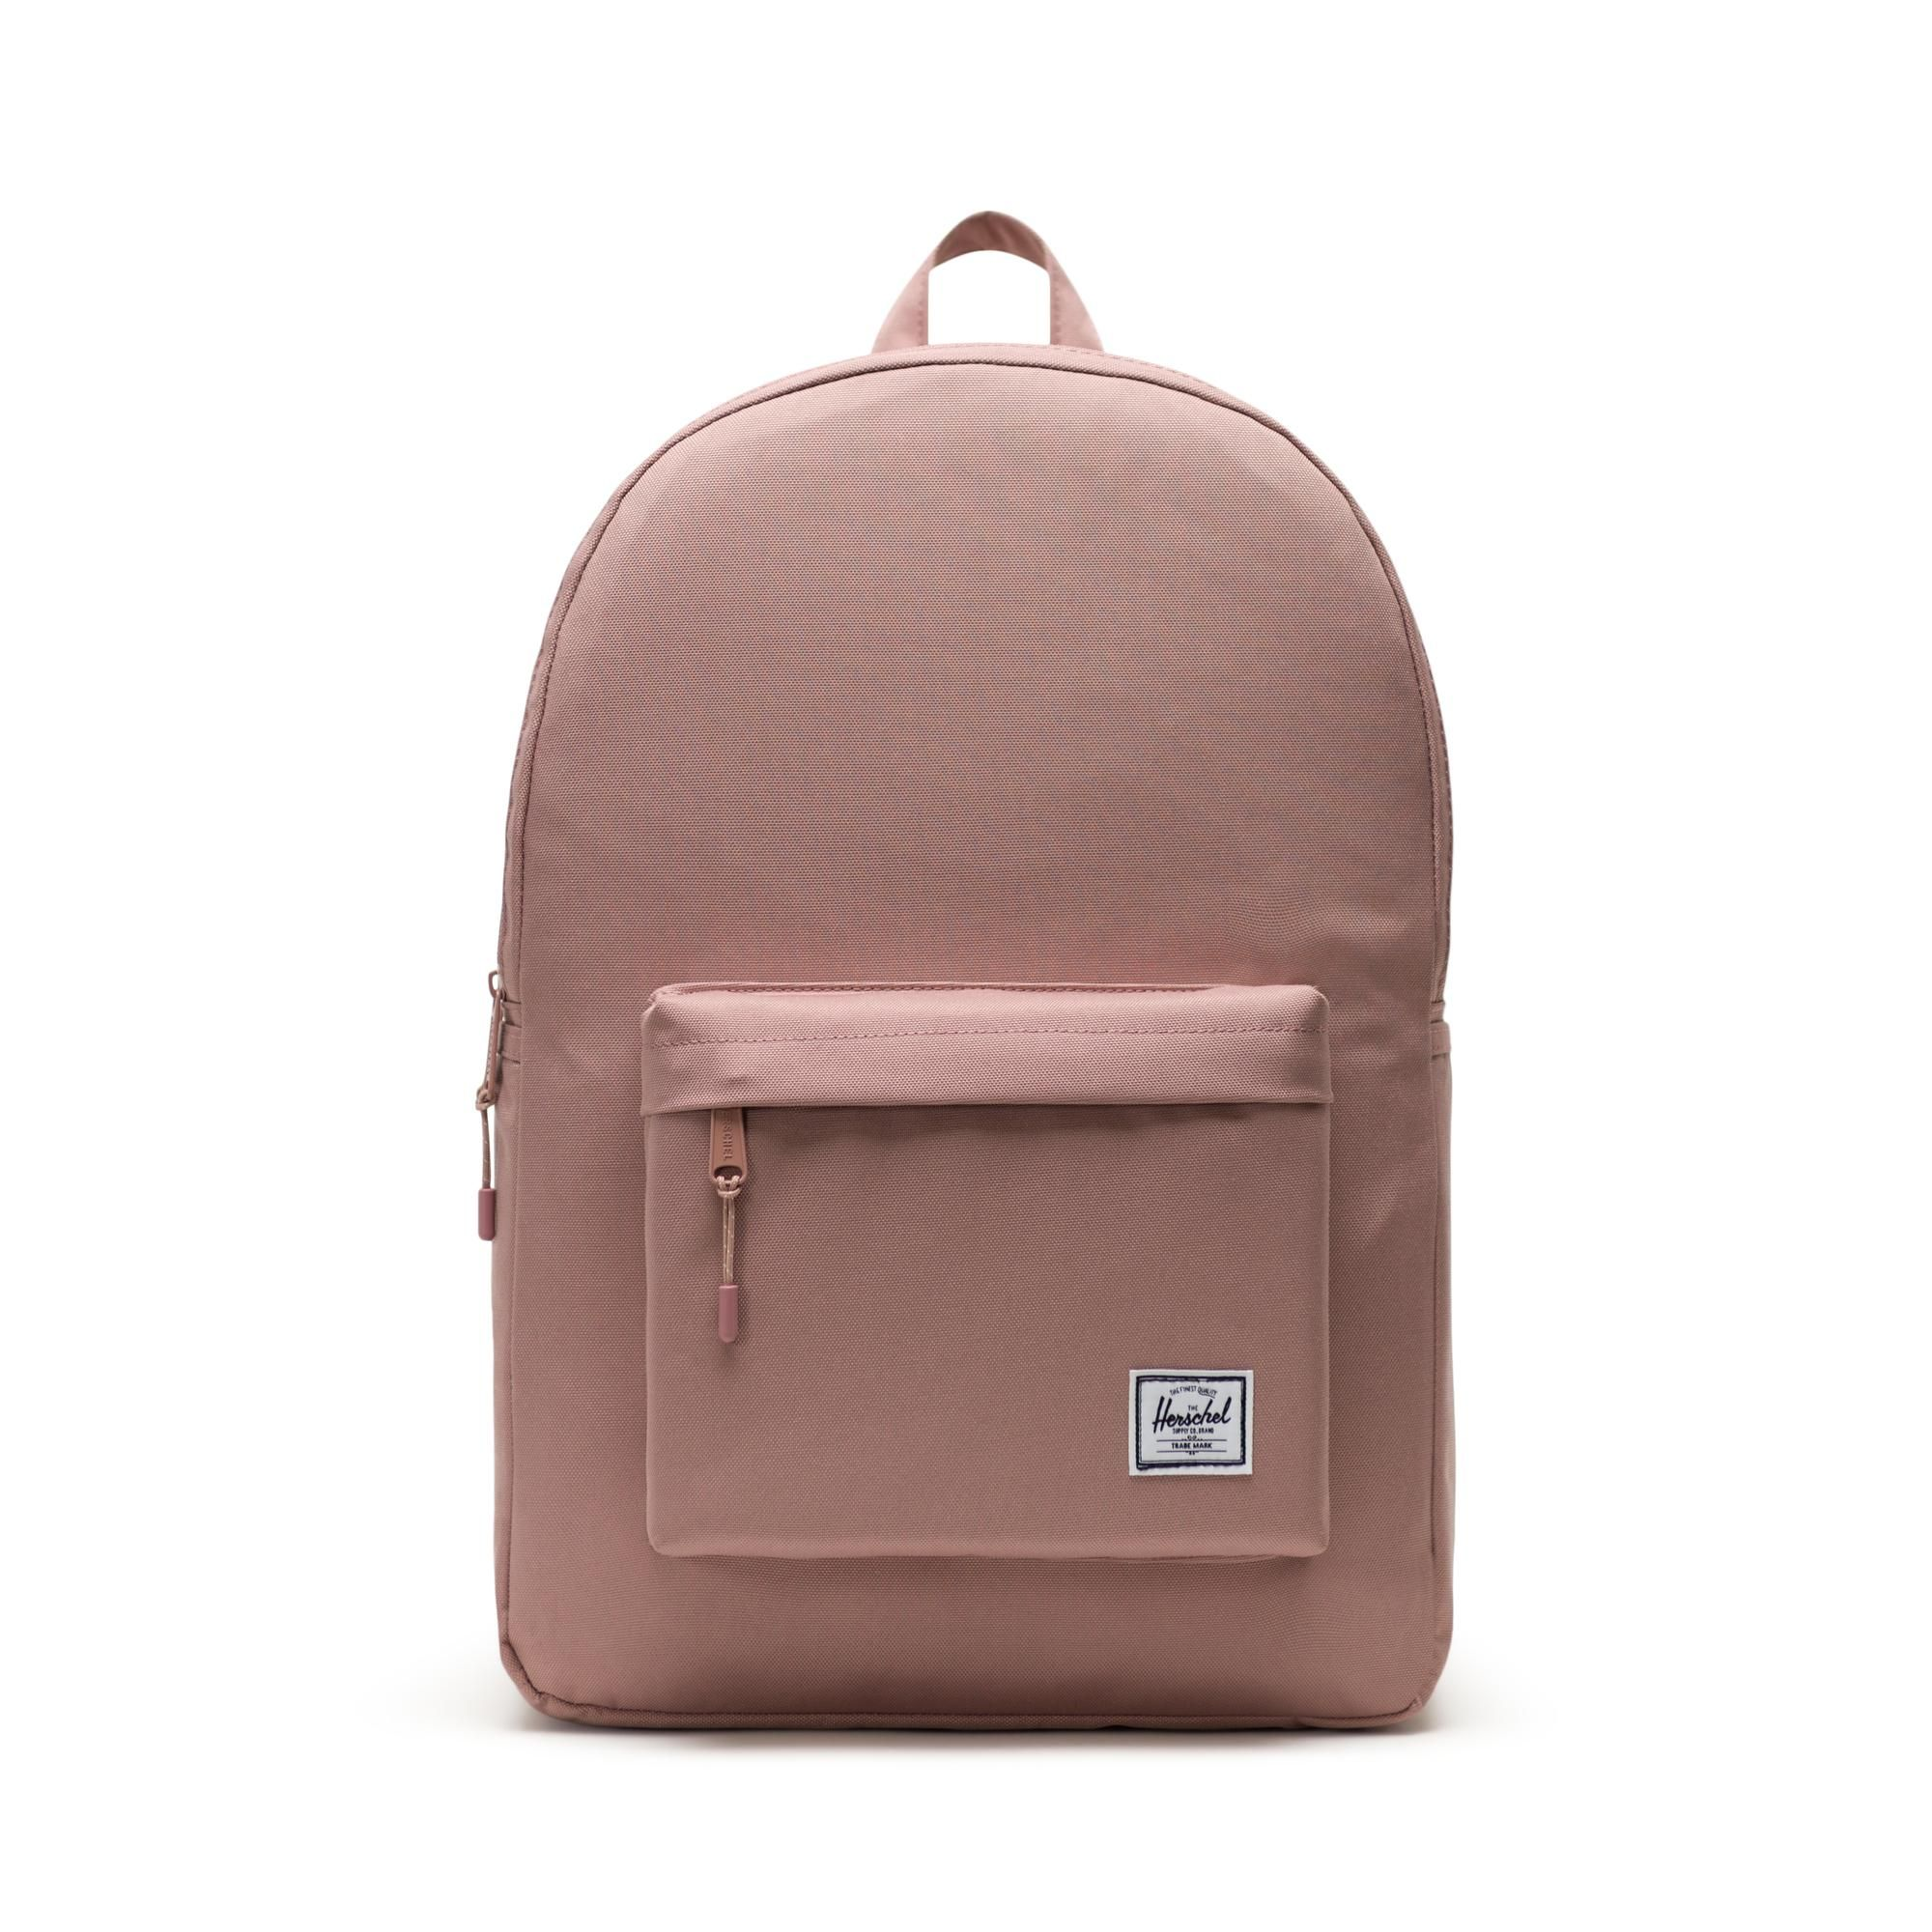 Classic Backpack Pro Herschel Supply Company Classic